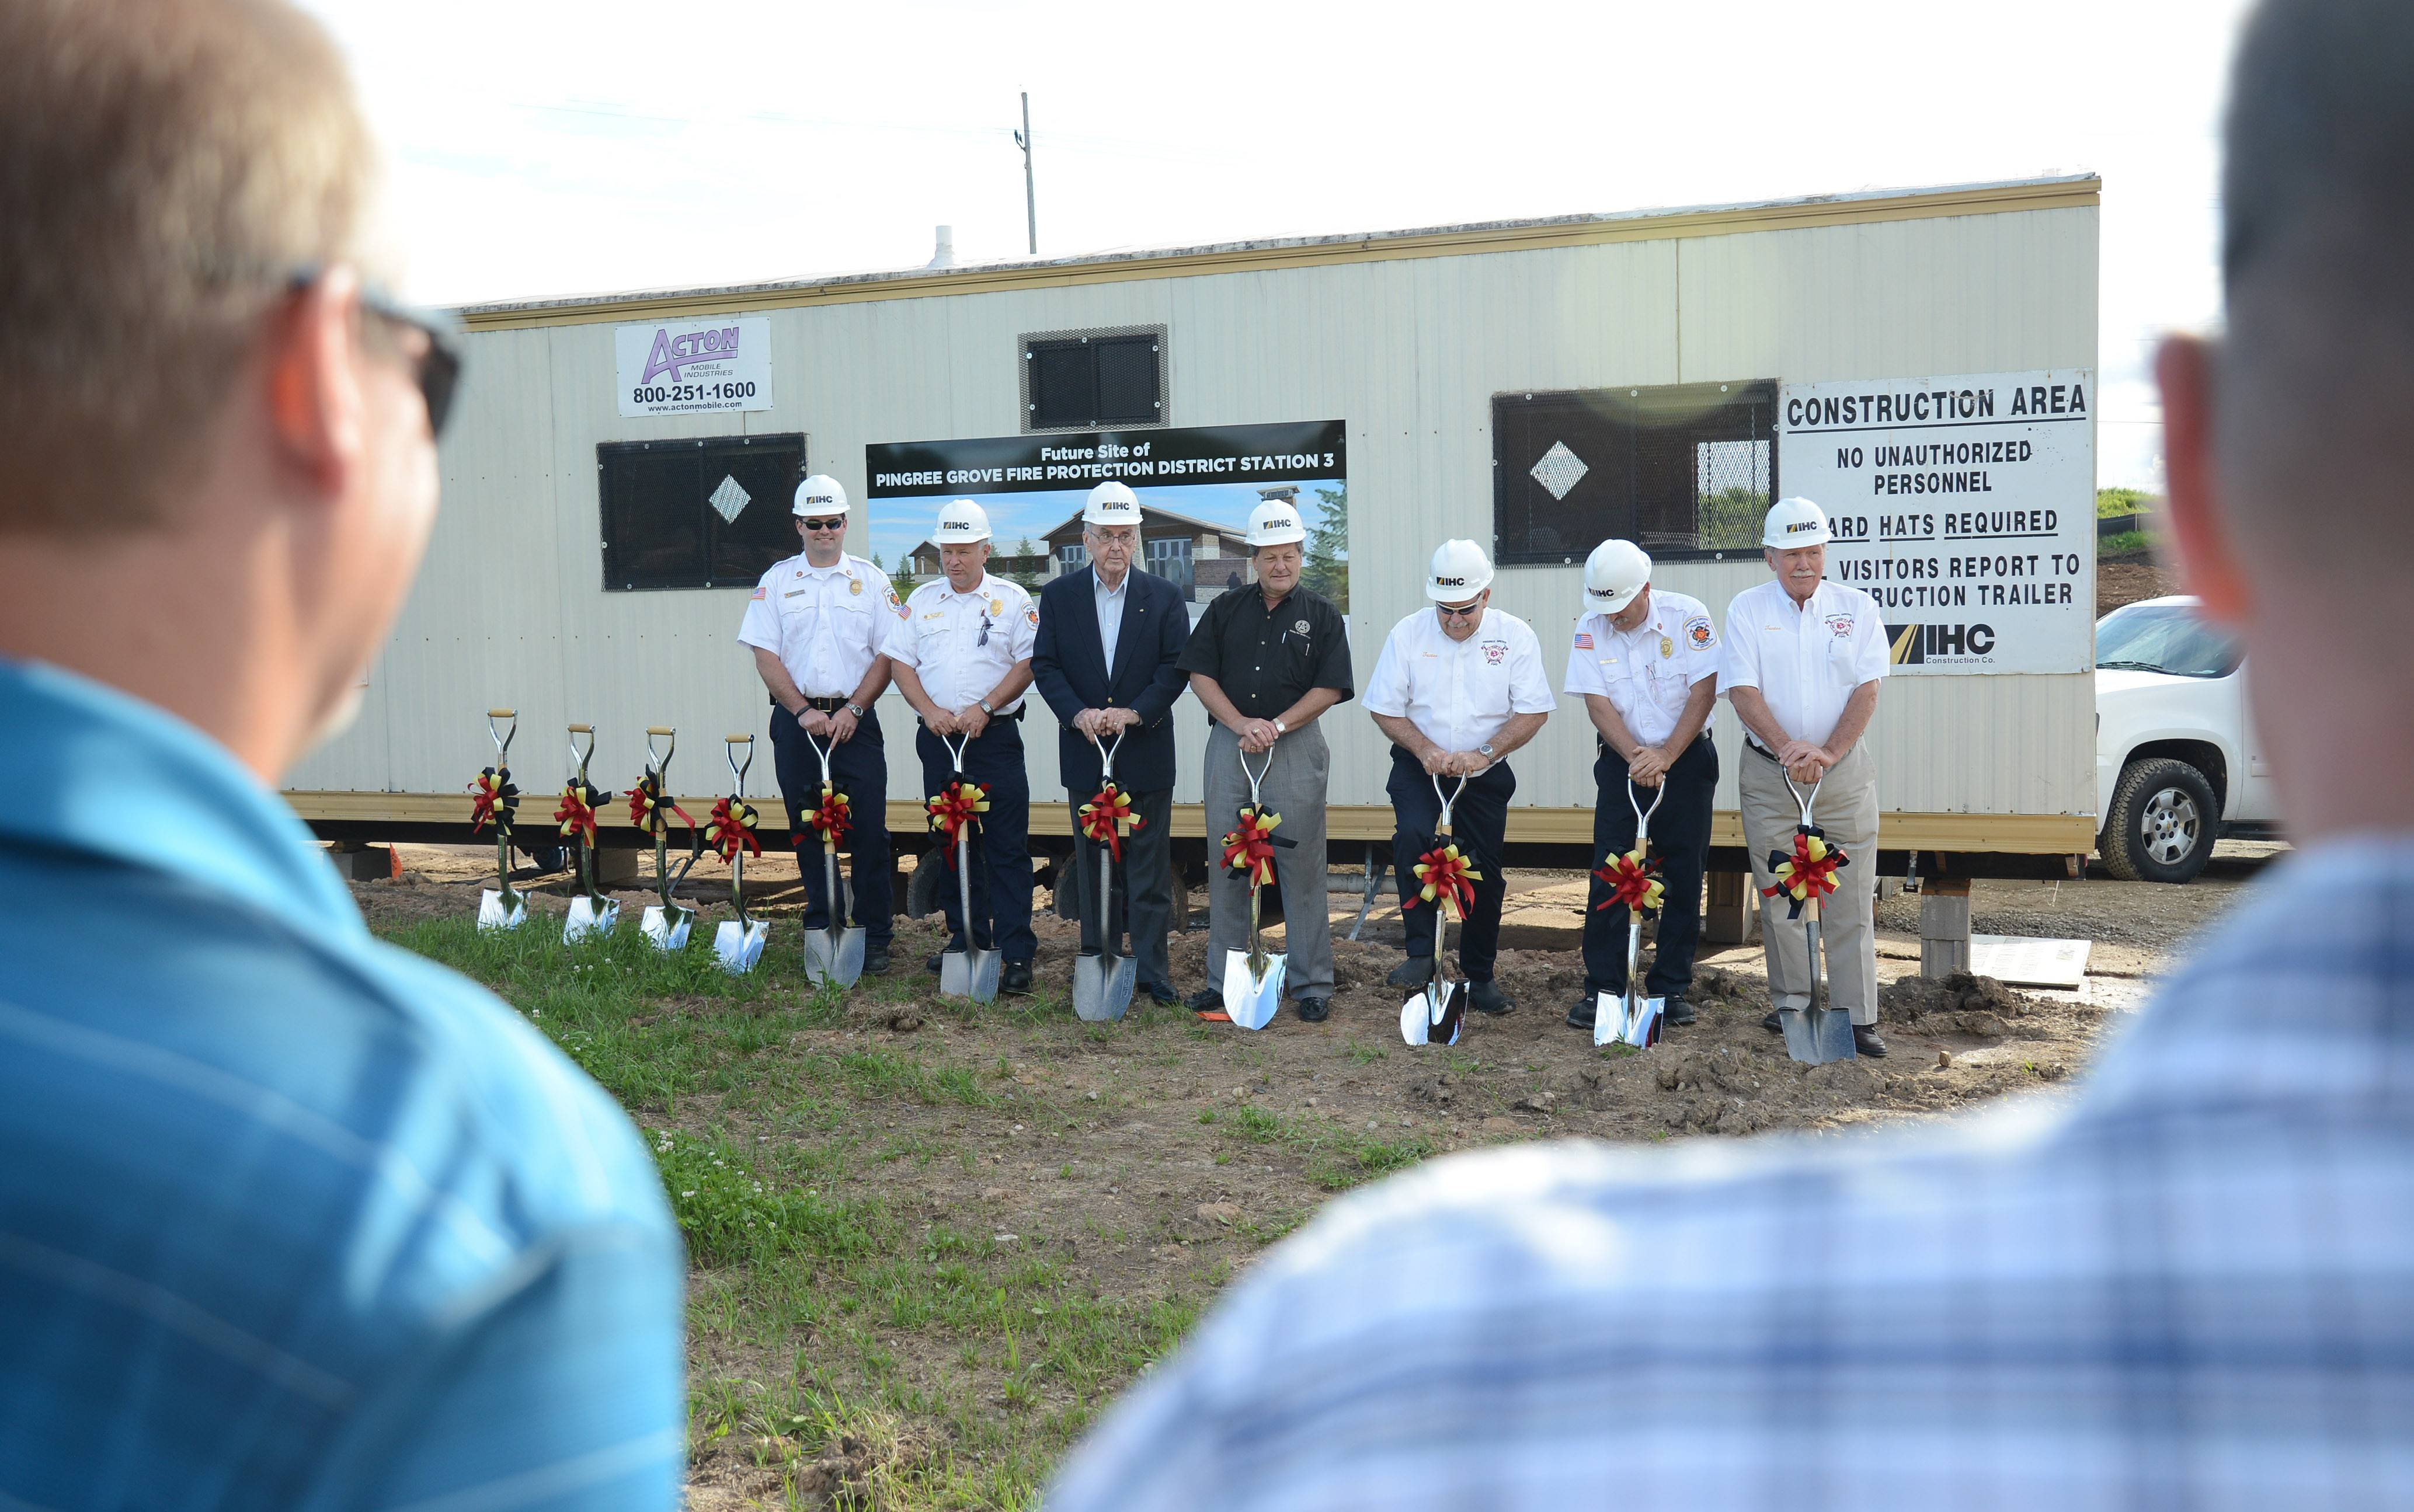 Pingree Grove & Countryside Fire Protection District trustees pose for formal photos at the groundbreaking of a new $3.3 million fire station on Tuesday evening. The station is being built near the Cambridge Lakes North, or Carillon, subdivision.